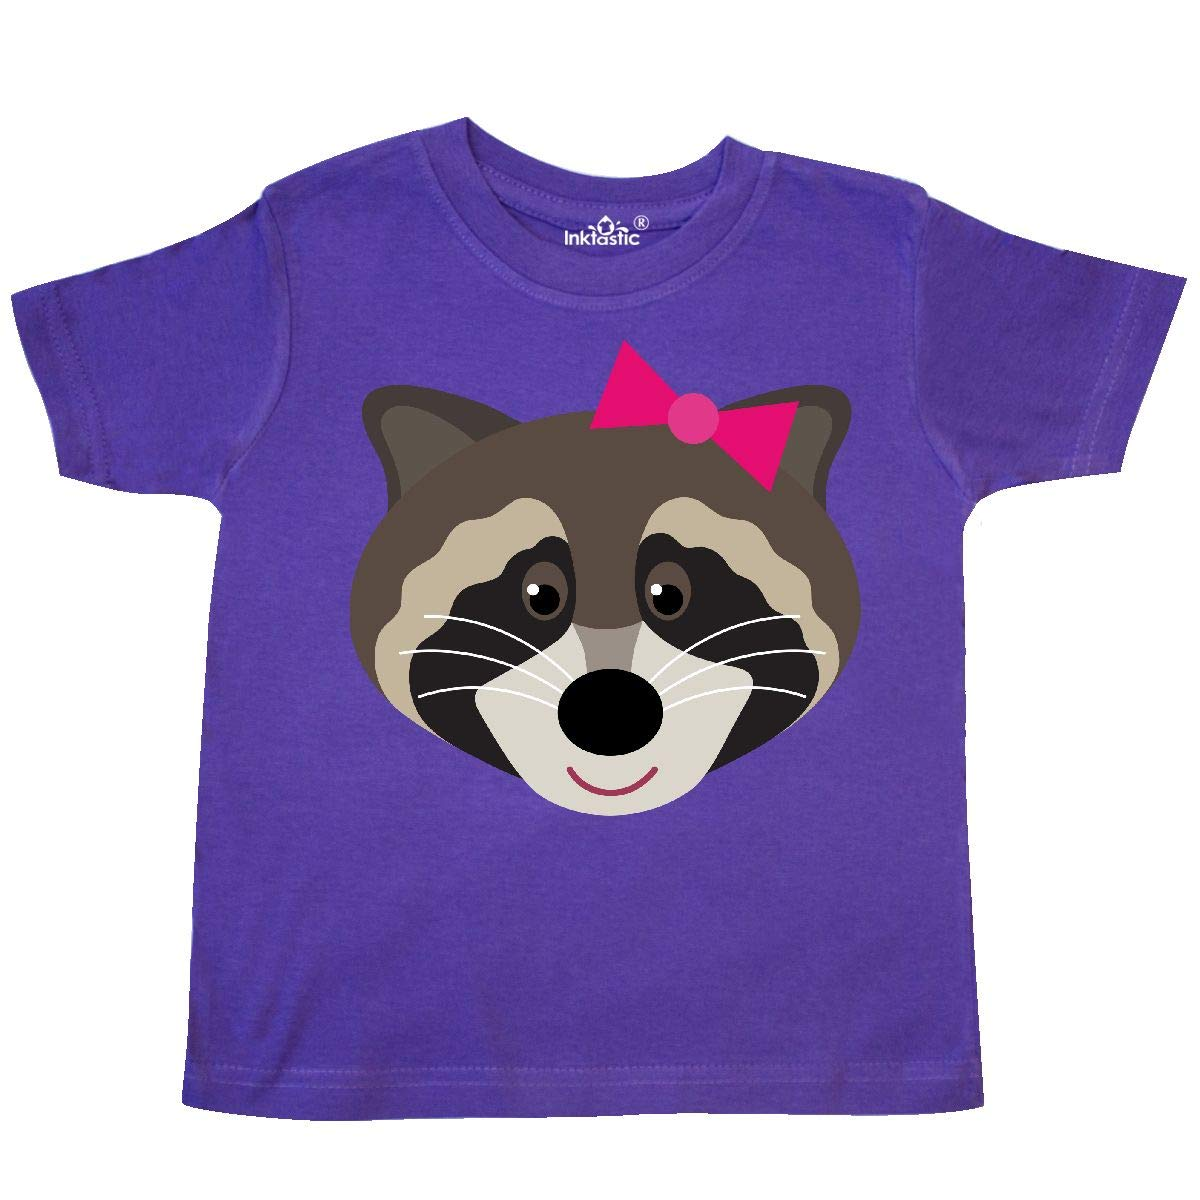 inktastic Raccoon Girl Animal Toddler T-Shirt